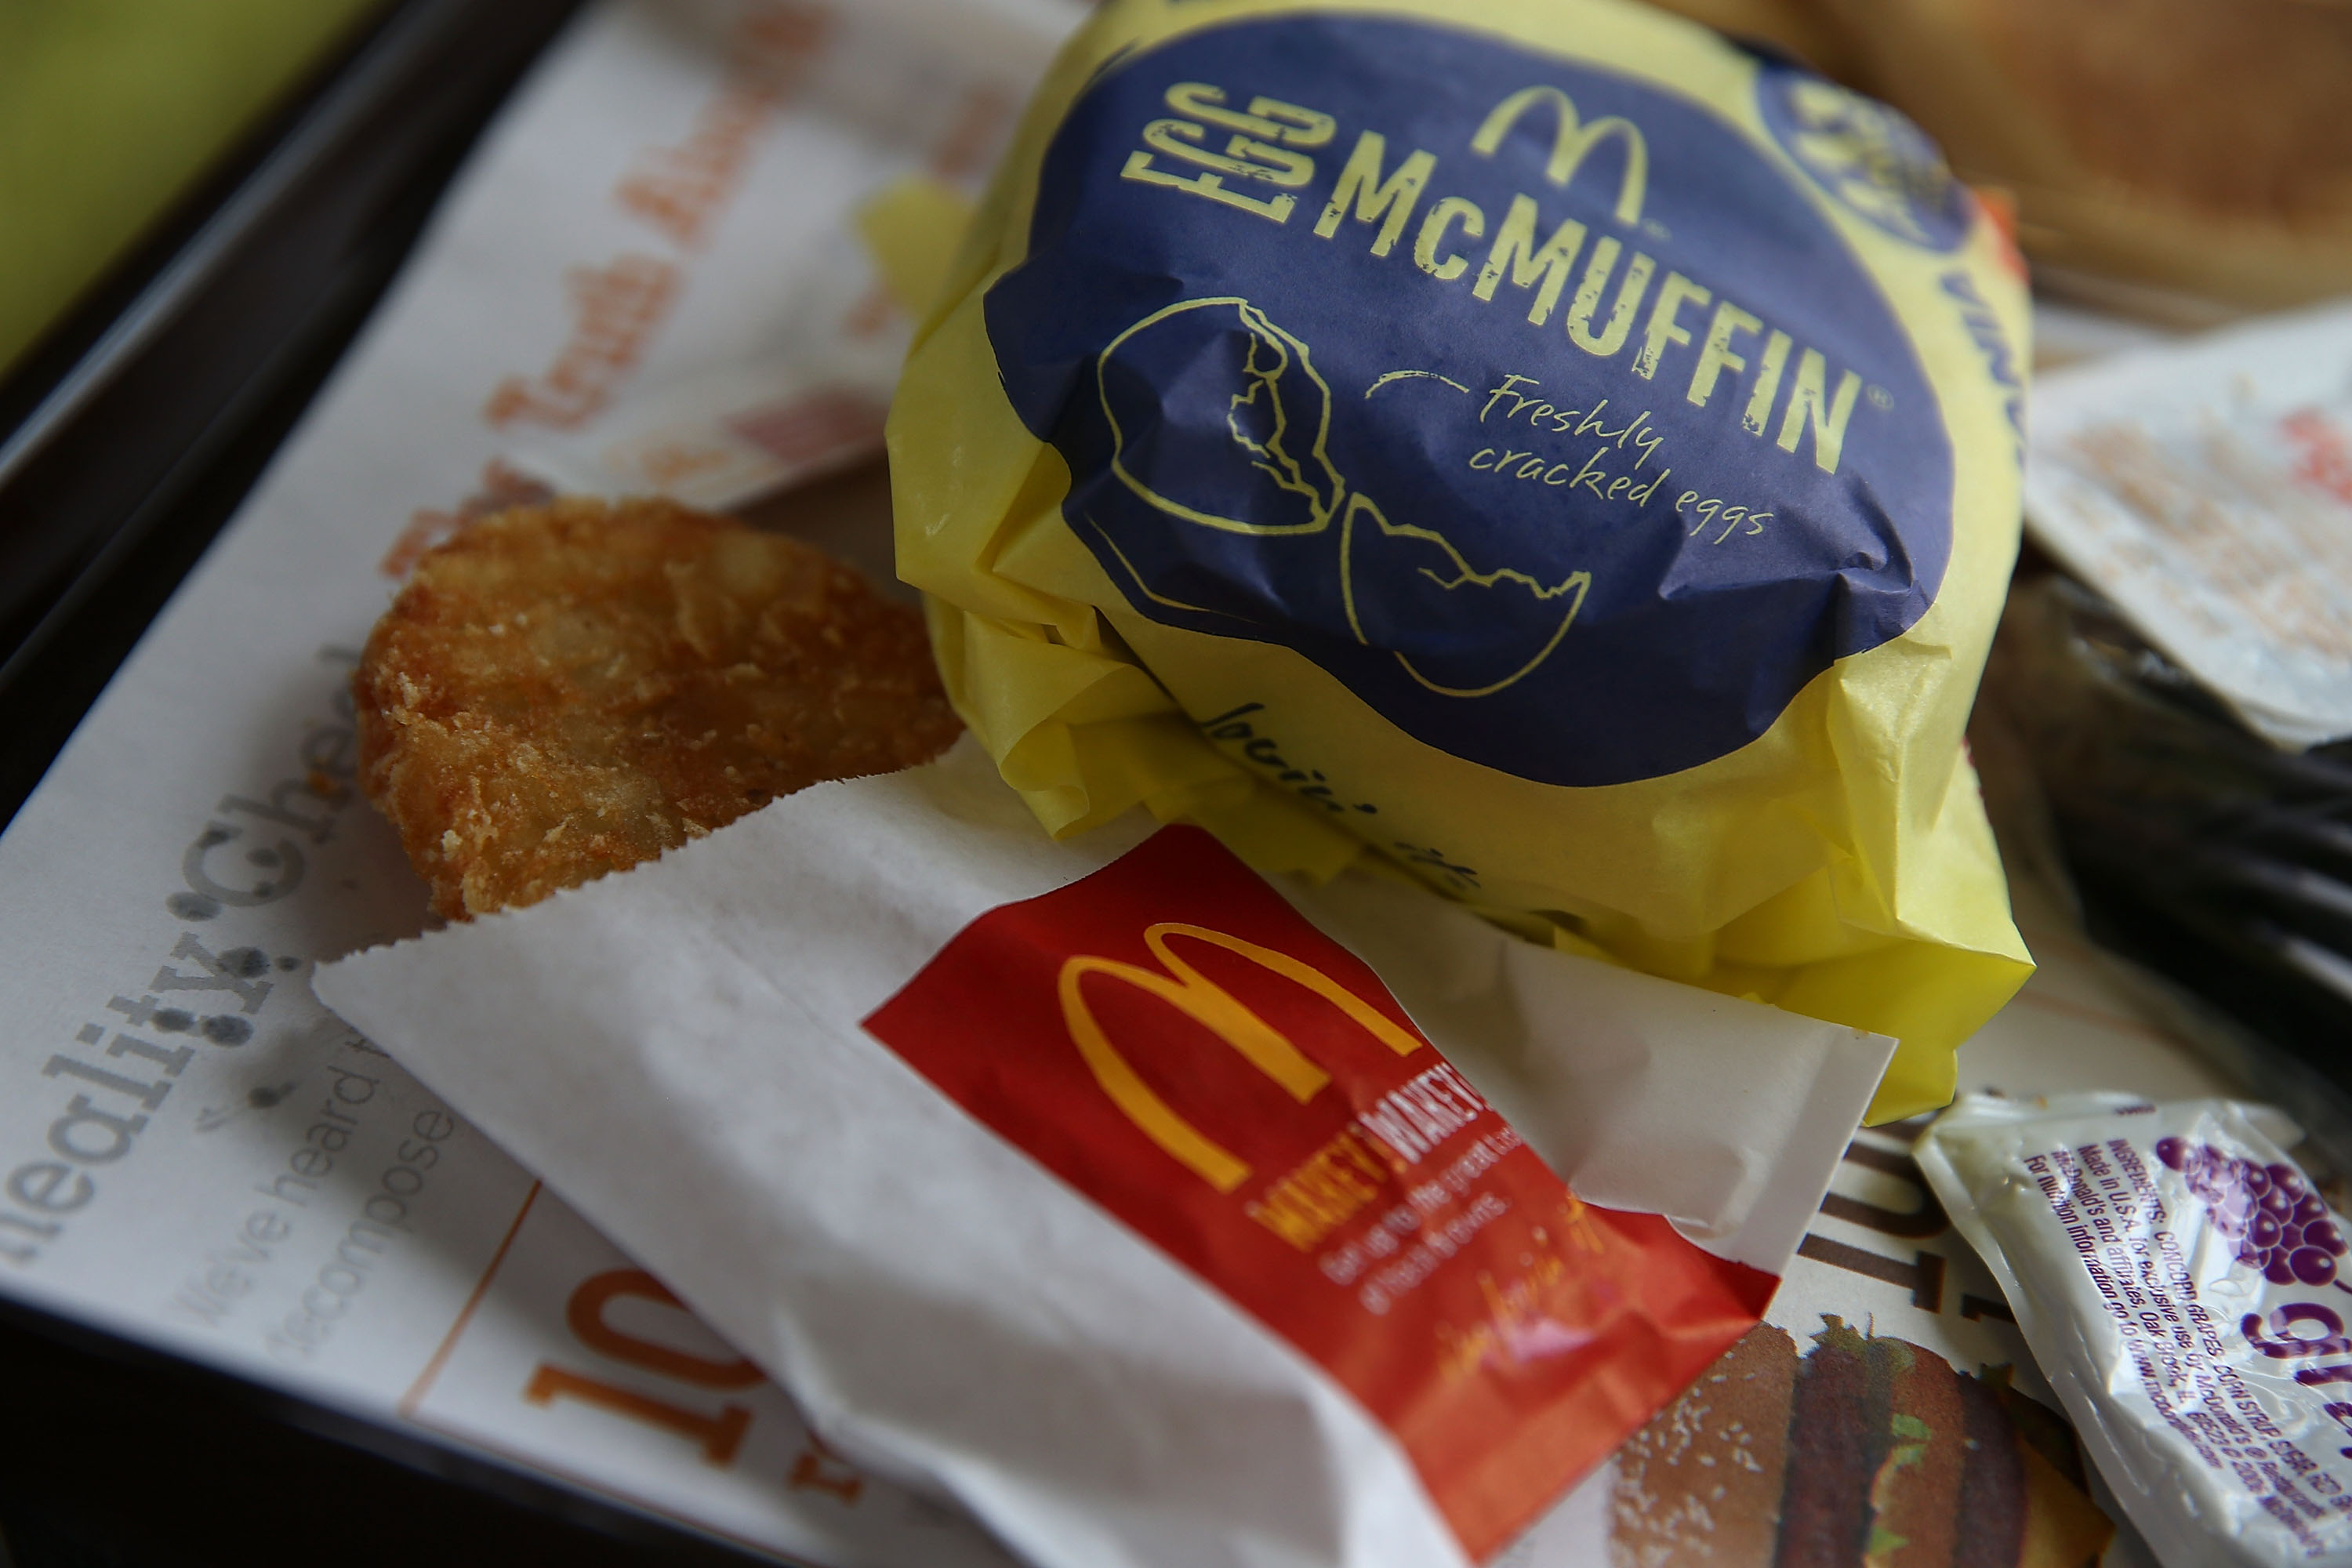 Report: McDonald's franchisees not happy with all-day breakfast